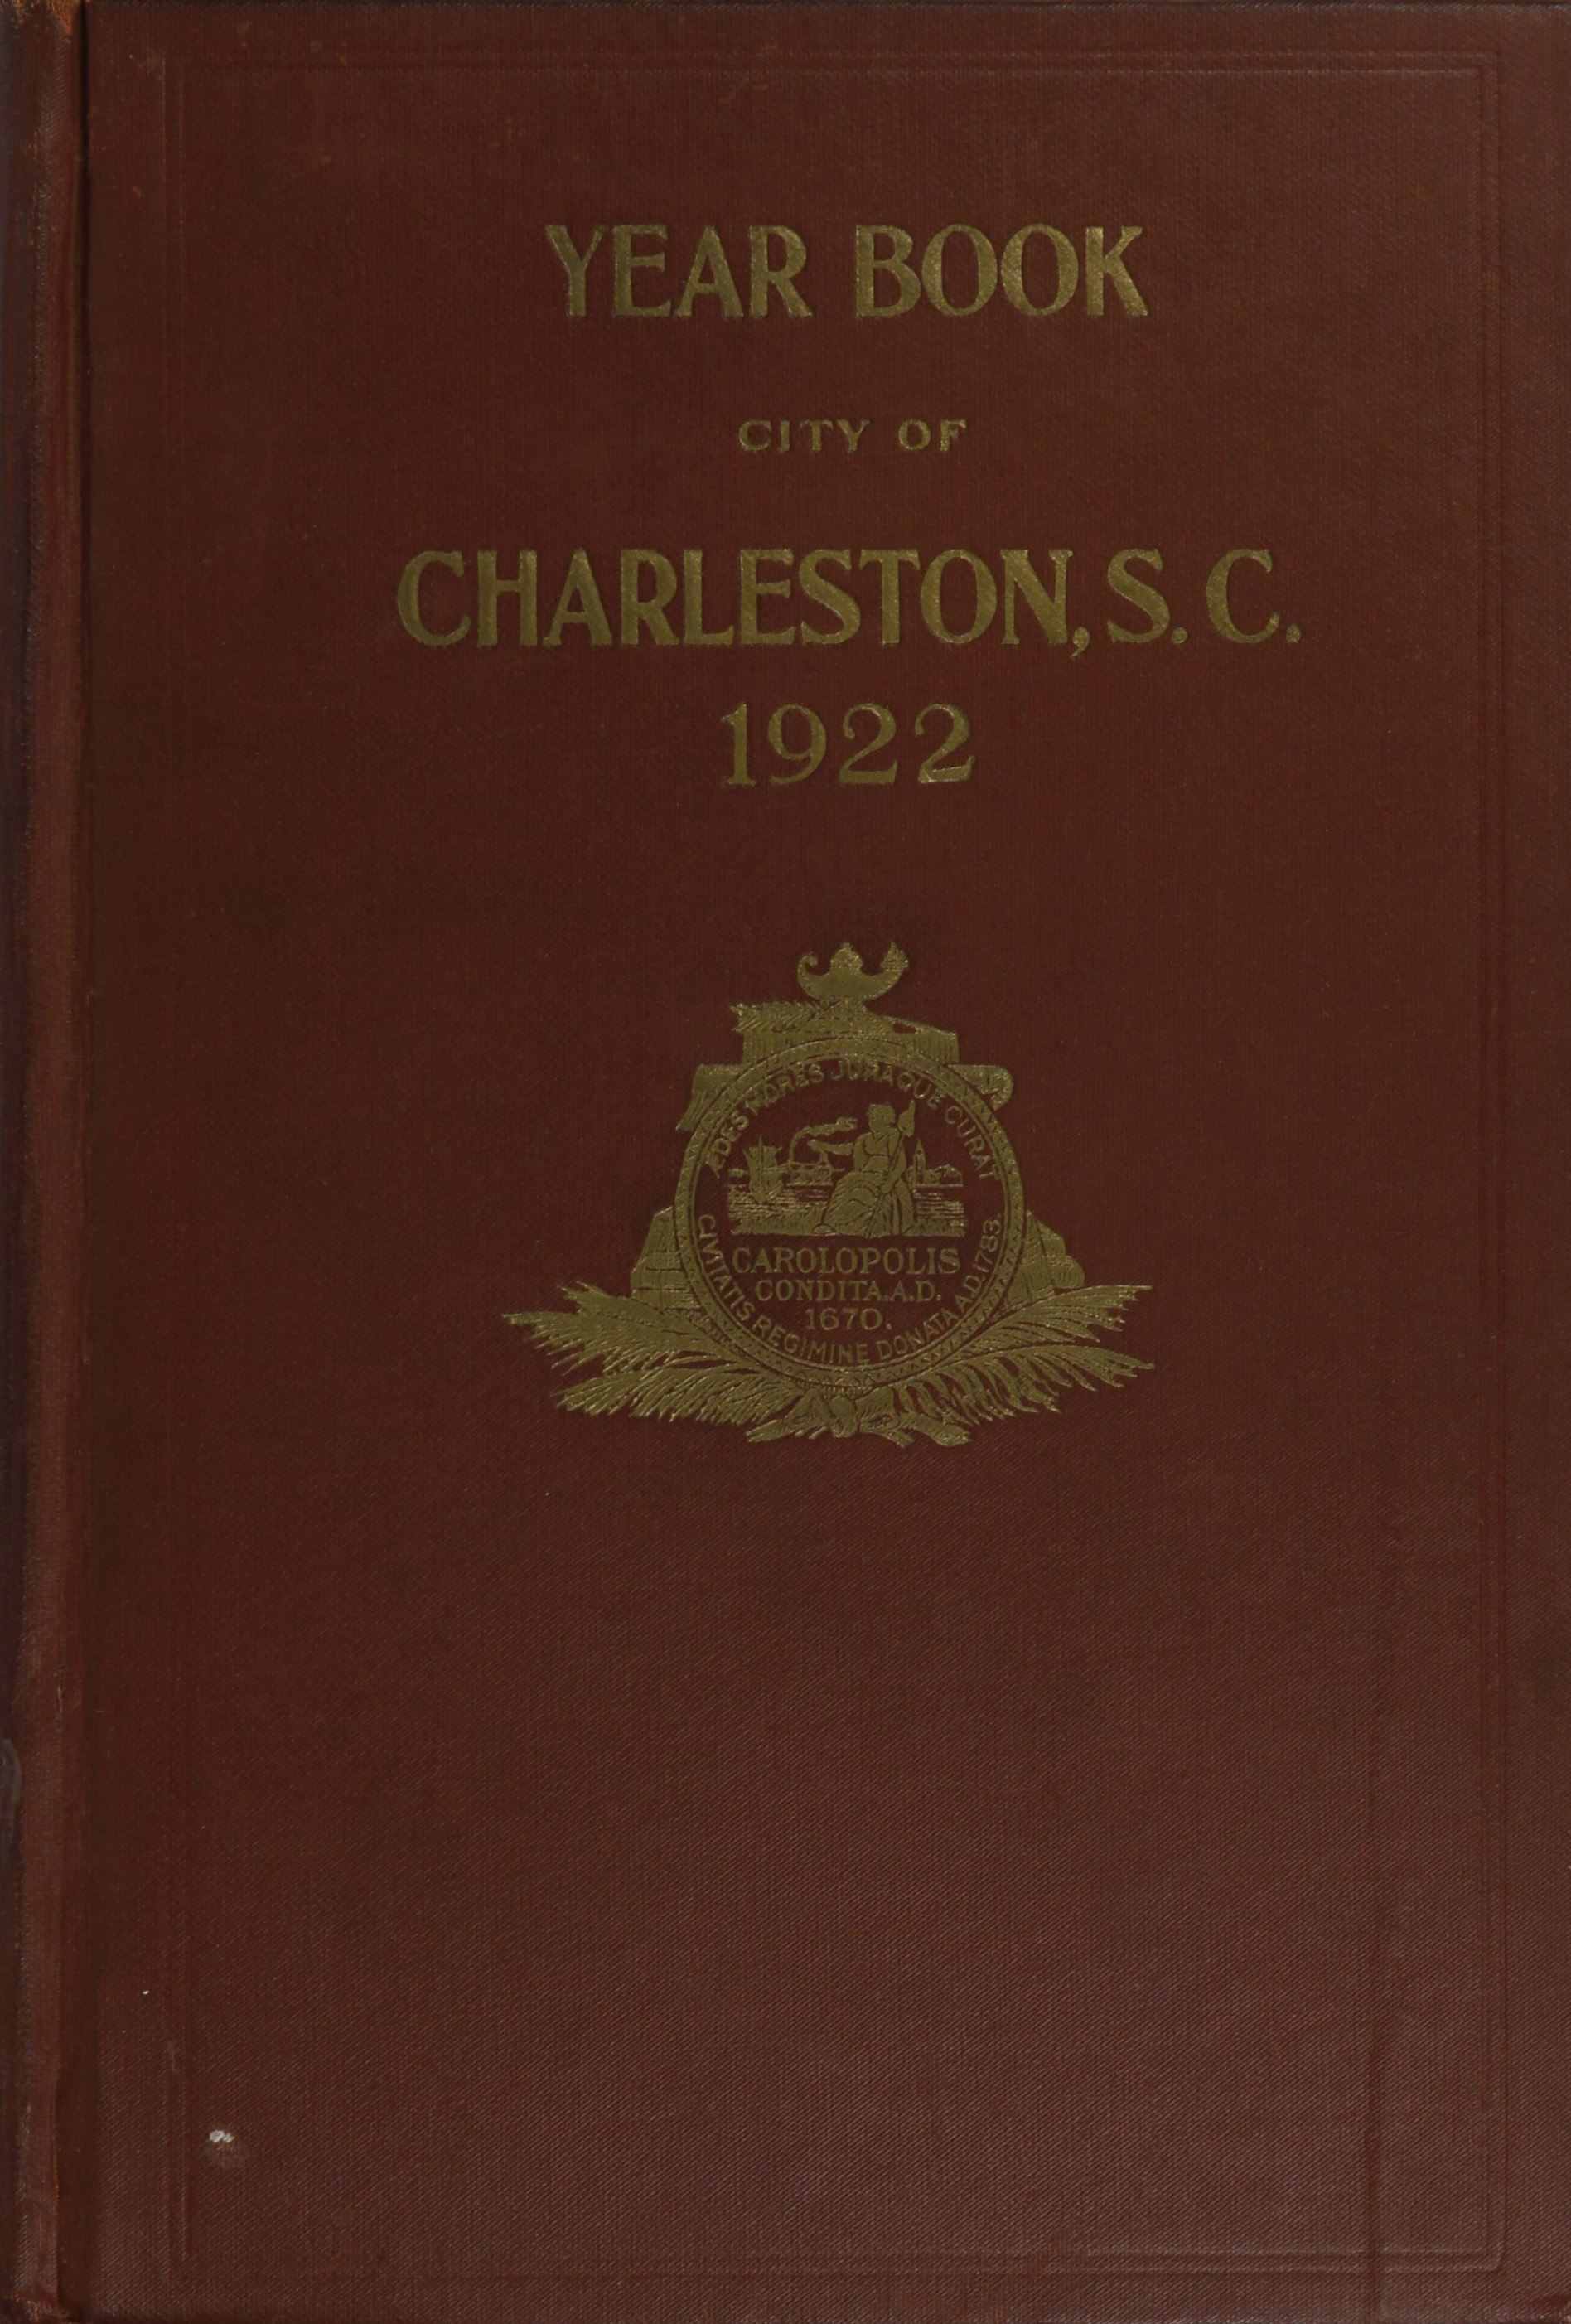 Charleston Yearbook, 1922